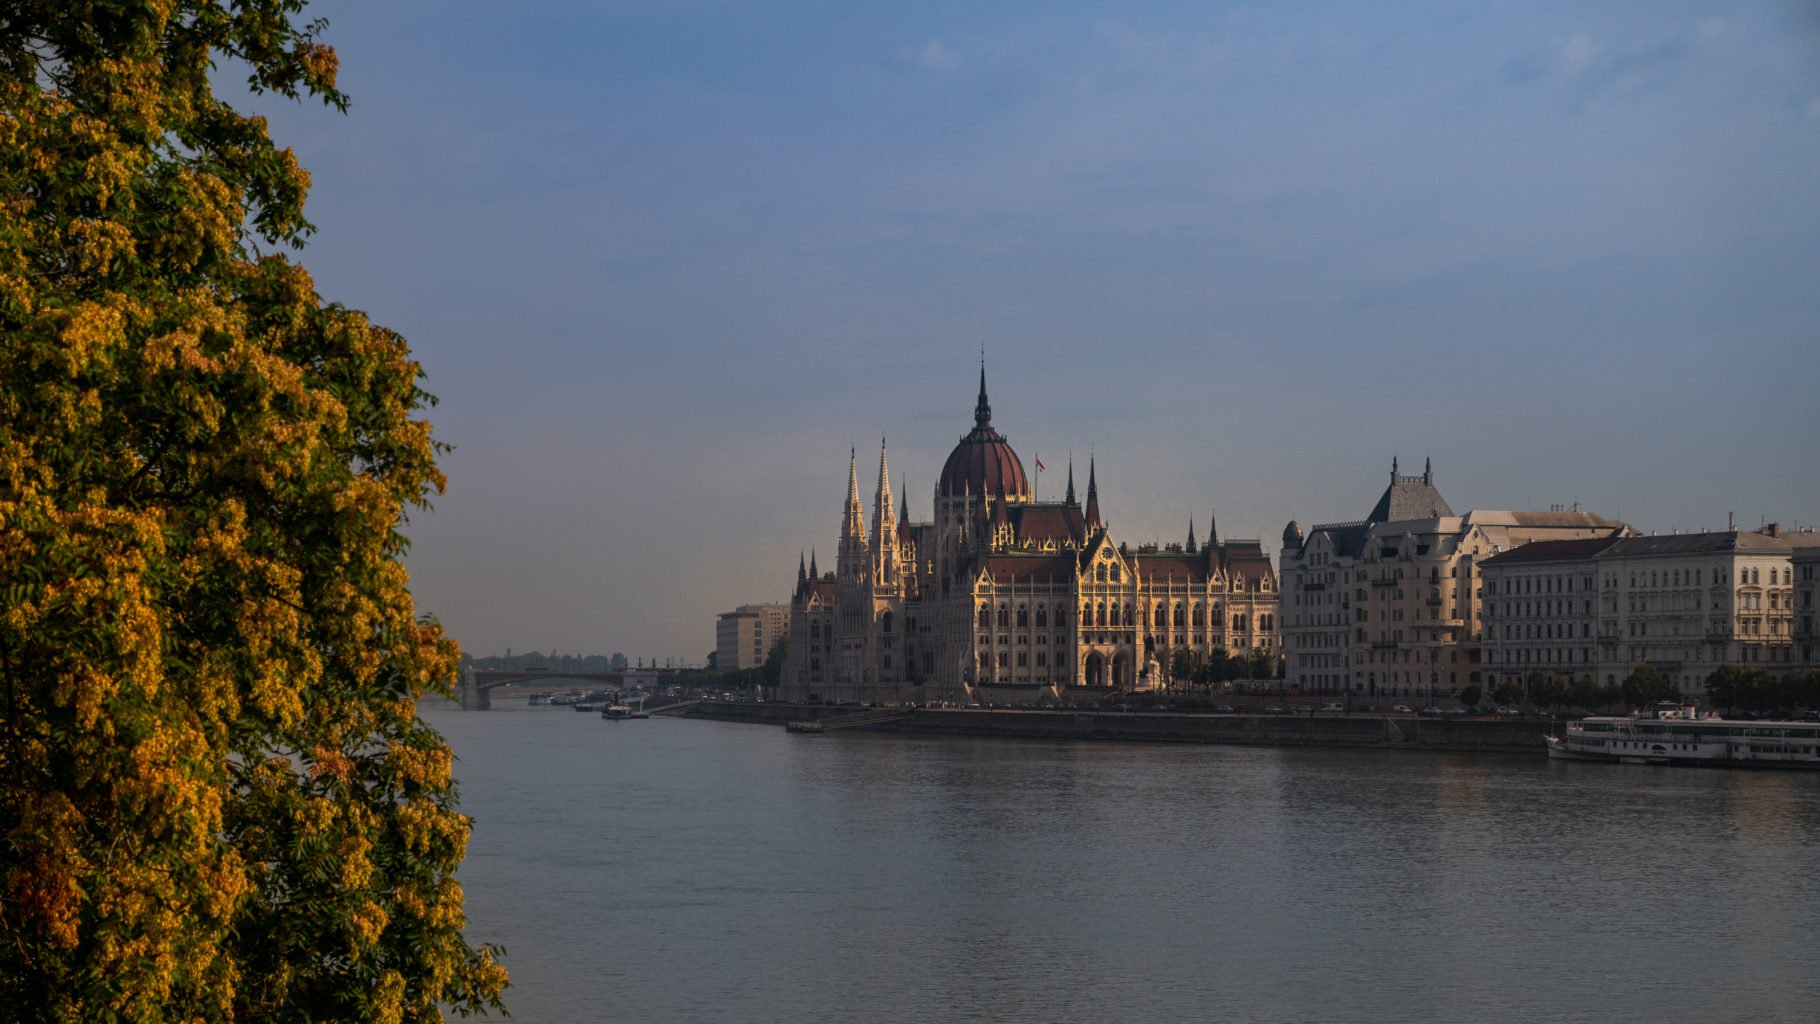 The Parlament in Budapest Hungary